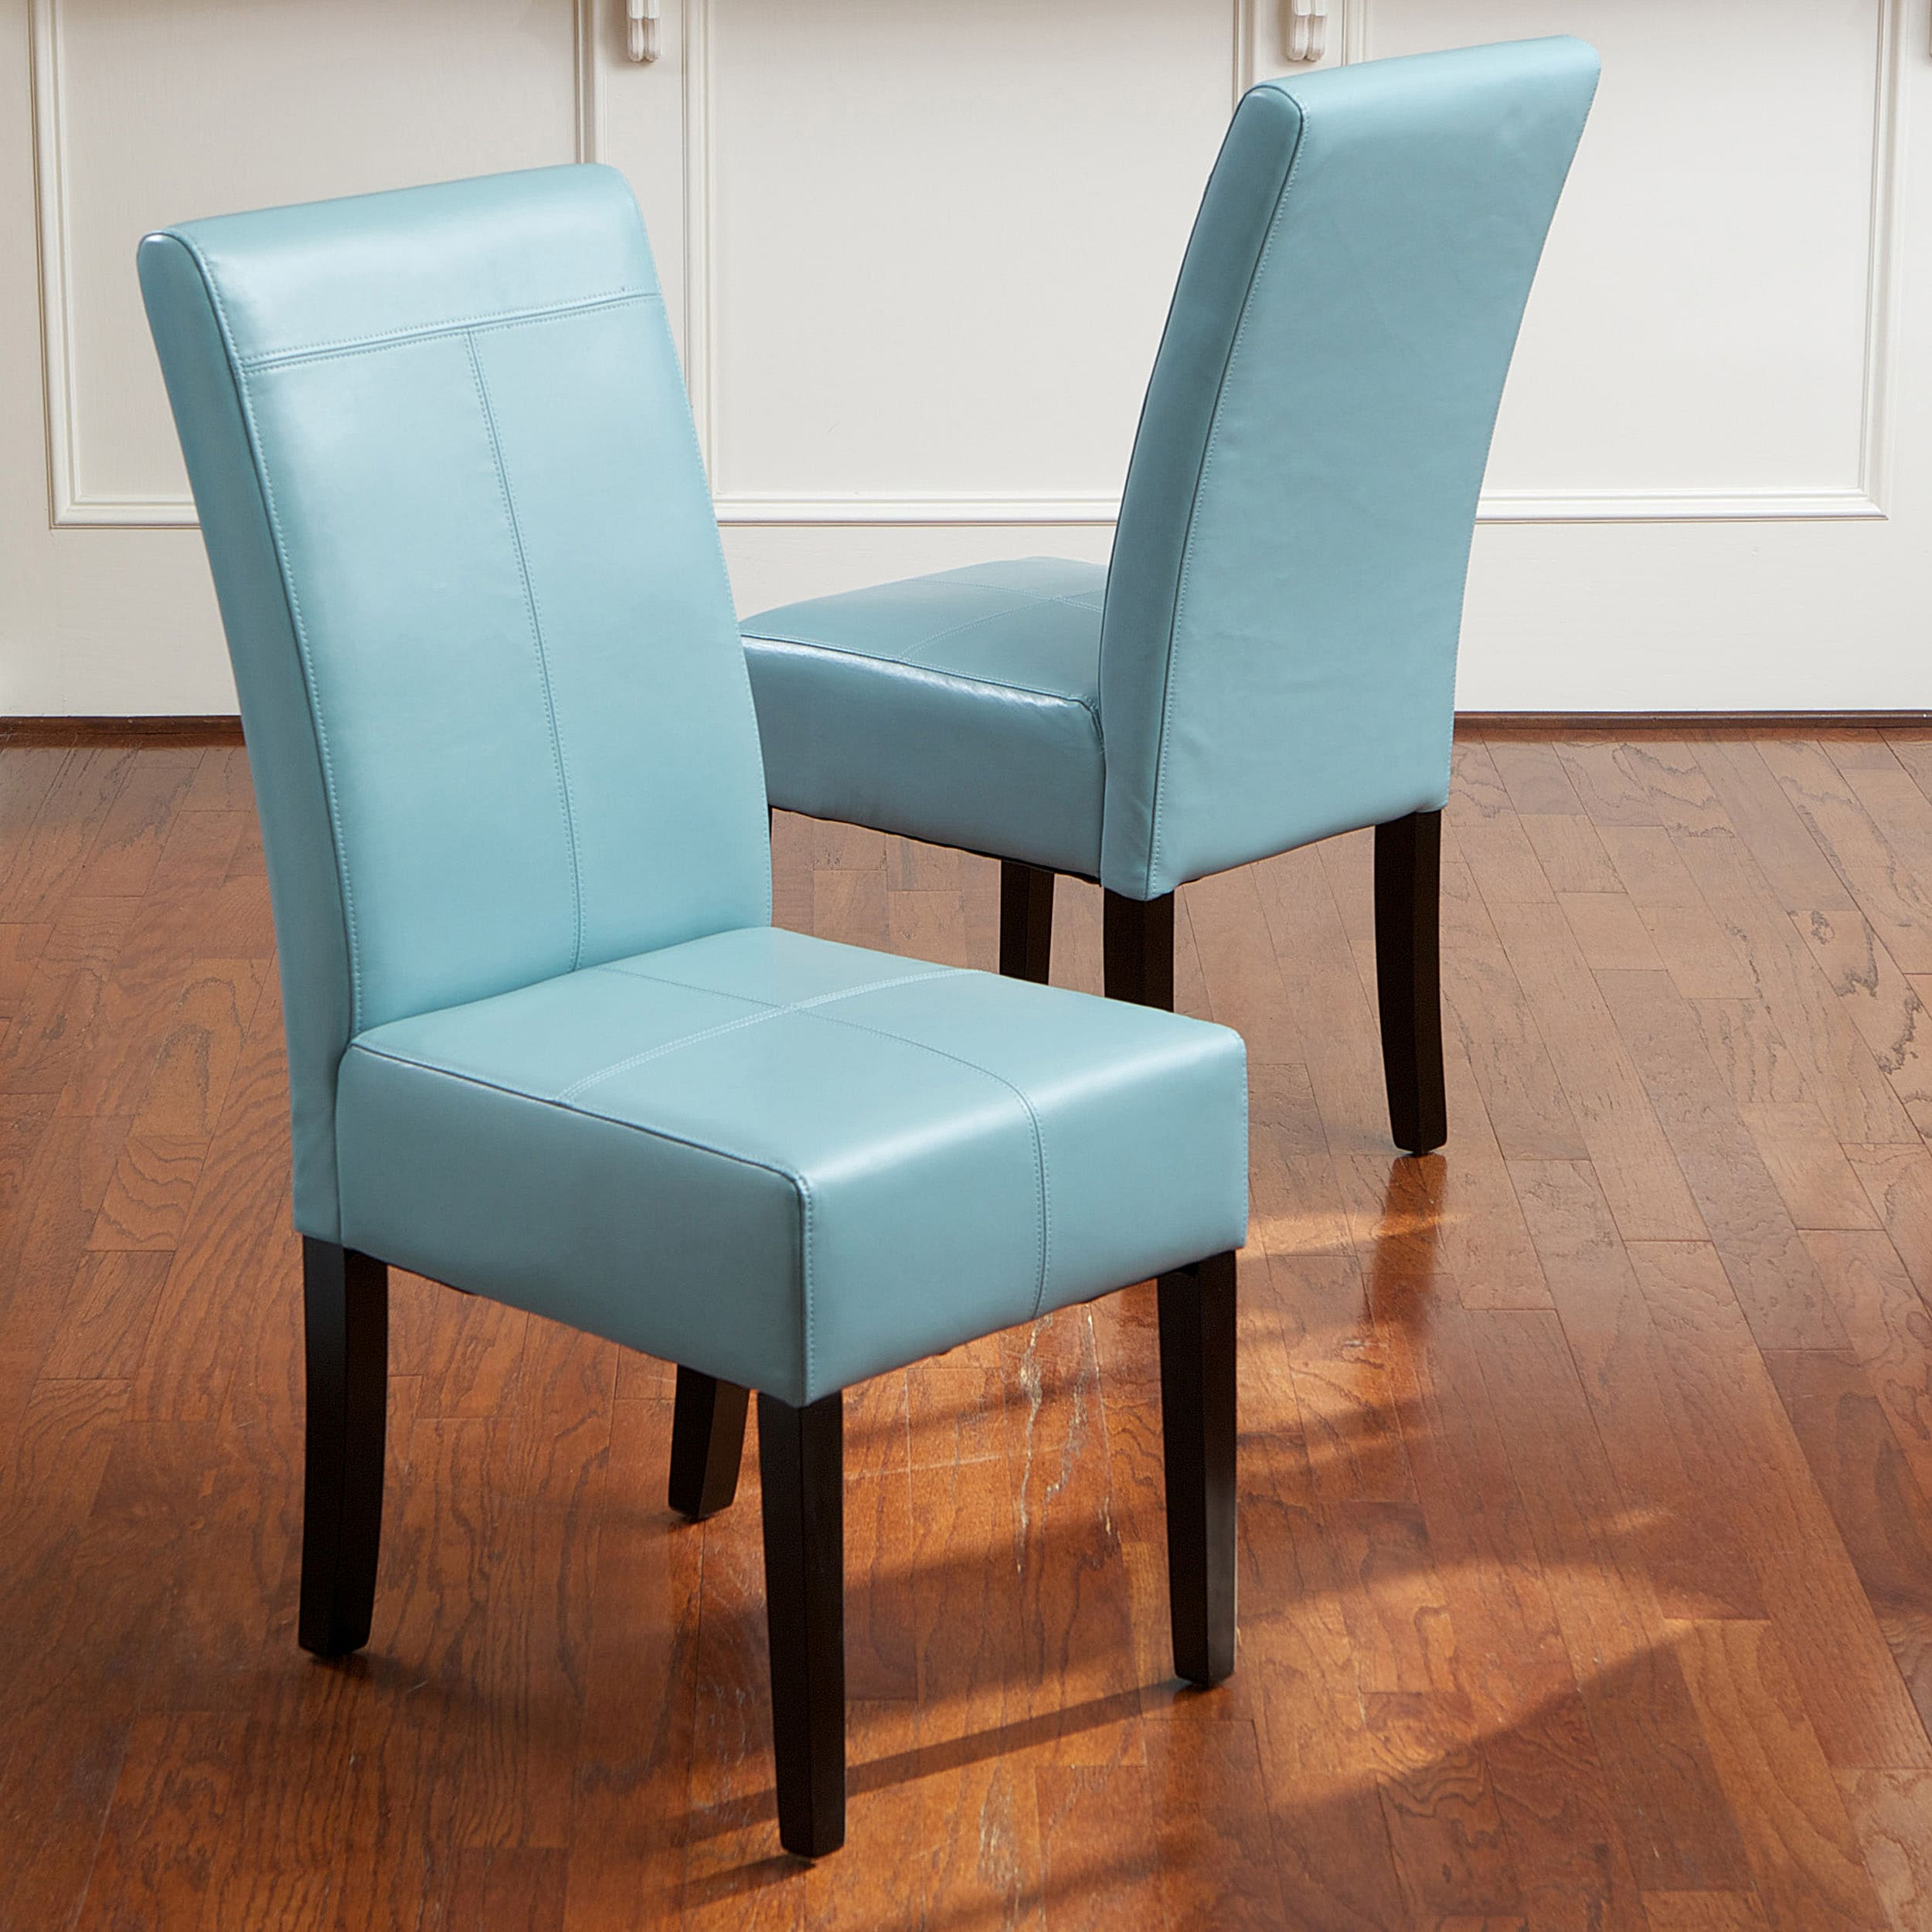 T Sch Teal Blue Leather Dining